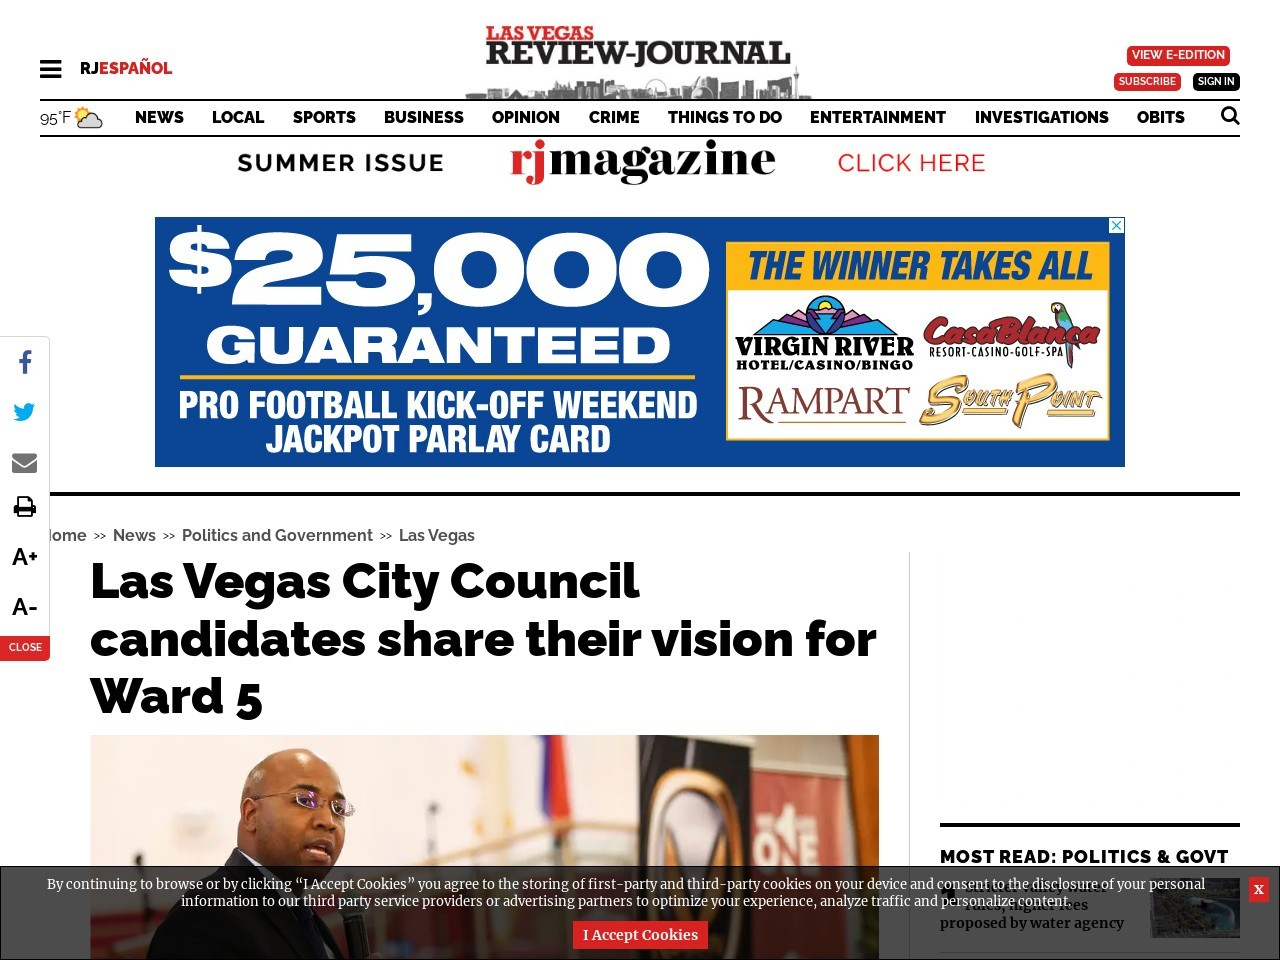 Las Vegas City Council candidates share their vision for Ward 5